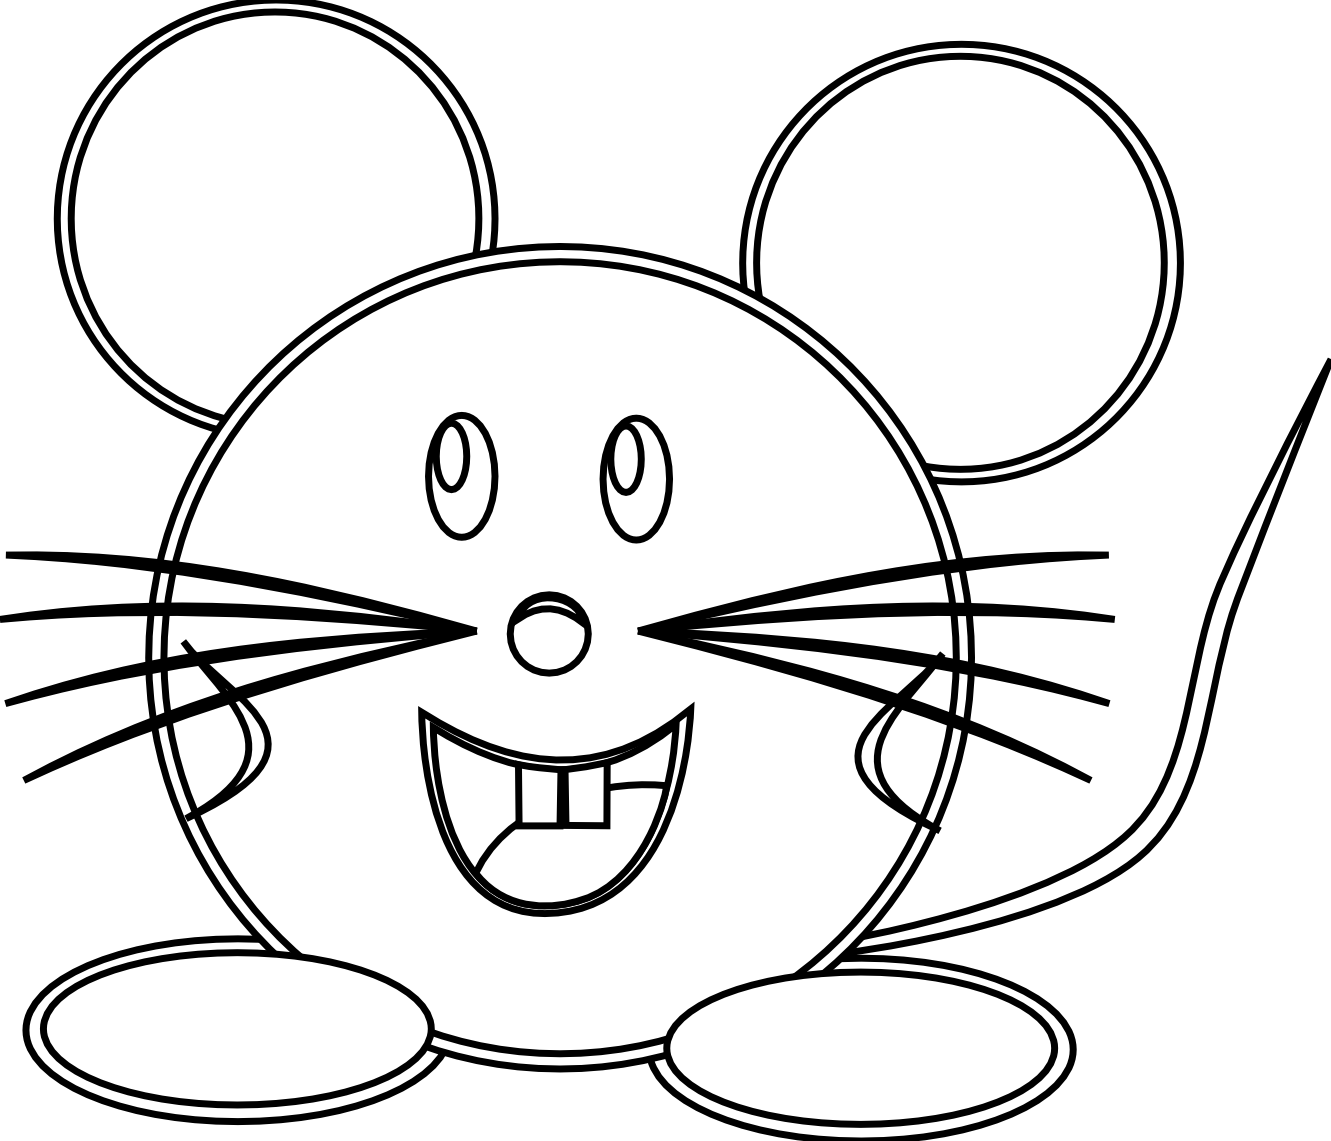 Line Drawing Face Vector : Raton mouse black white line art scalable vector graphics